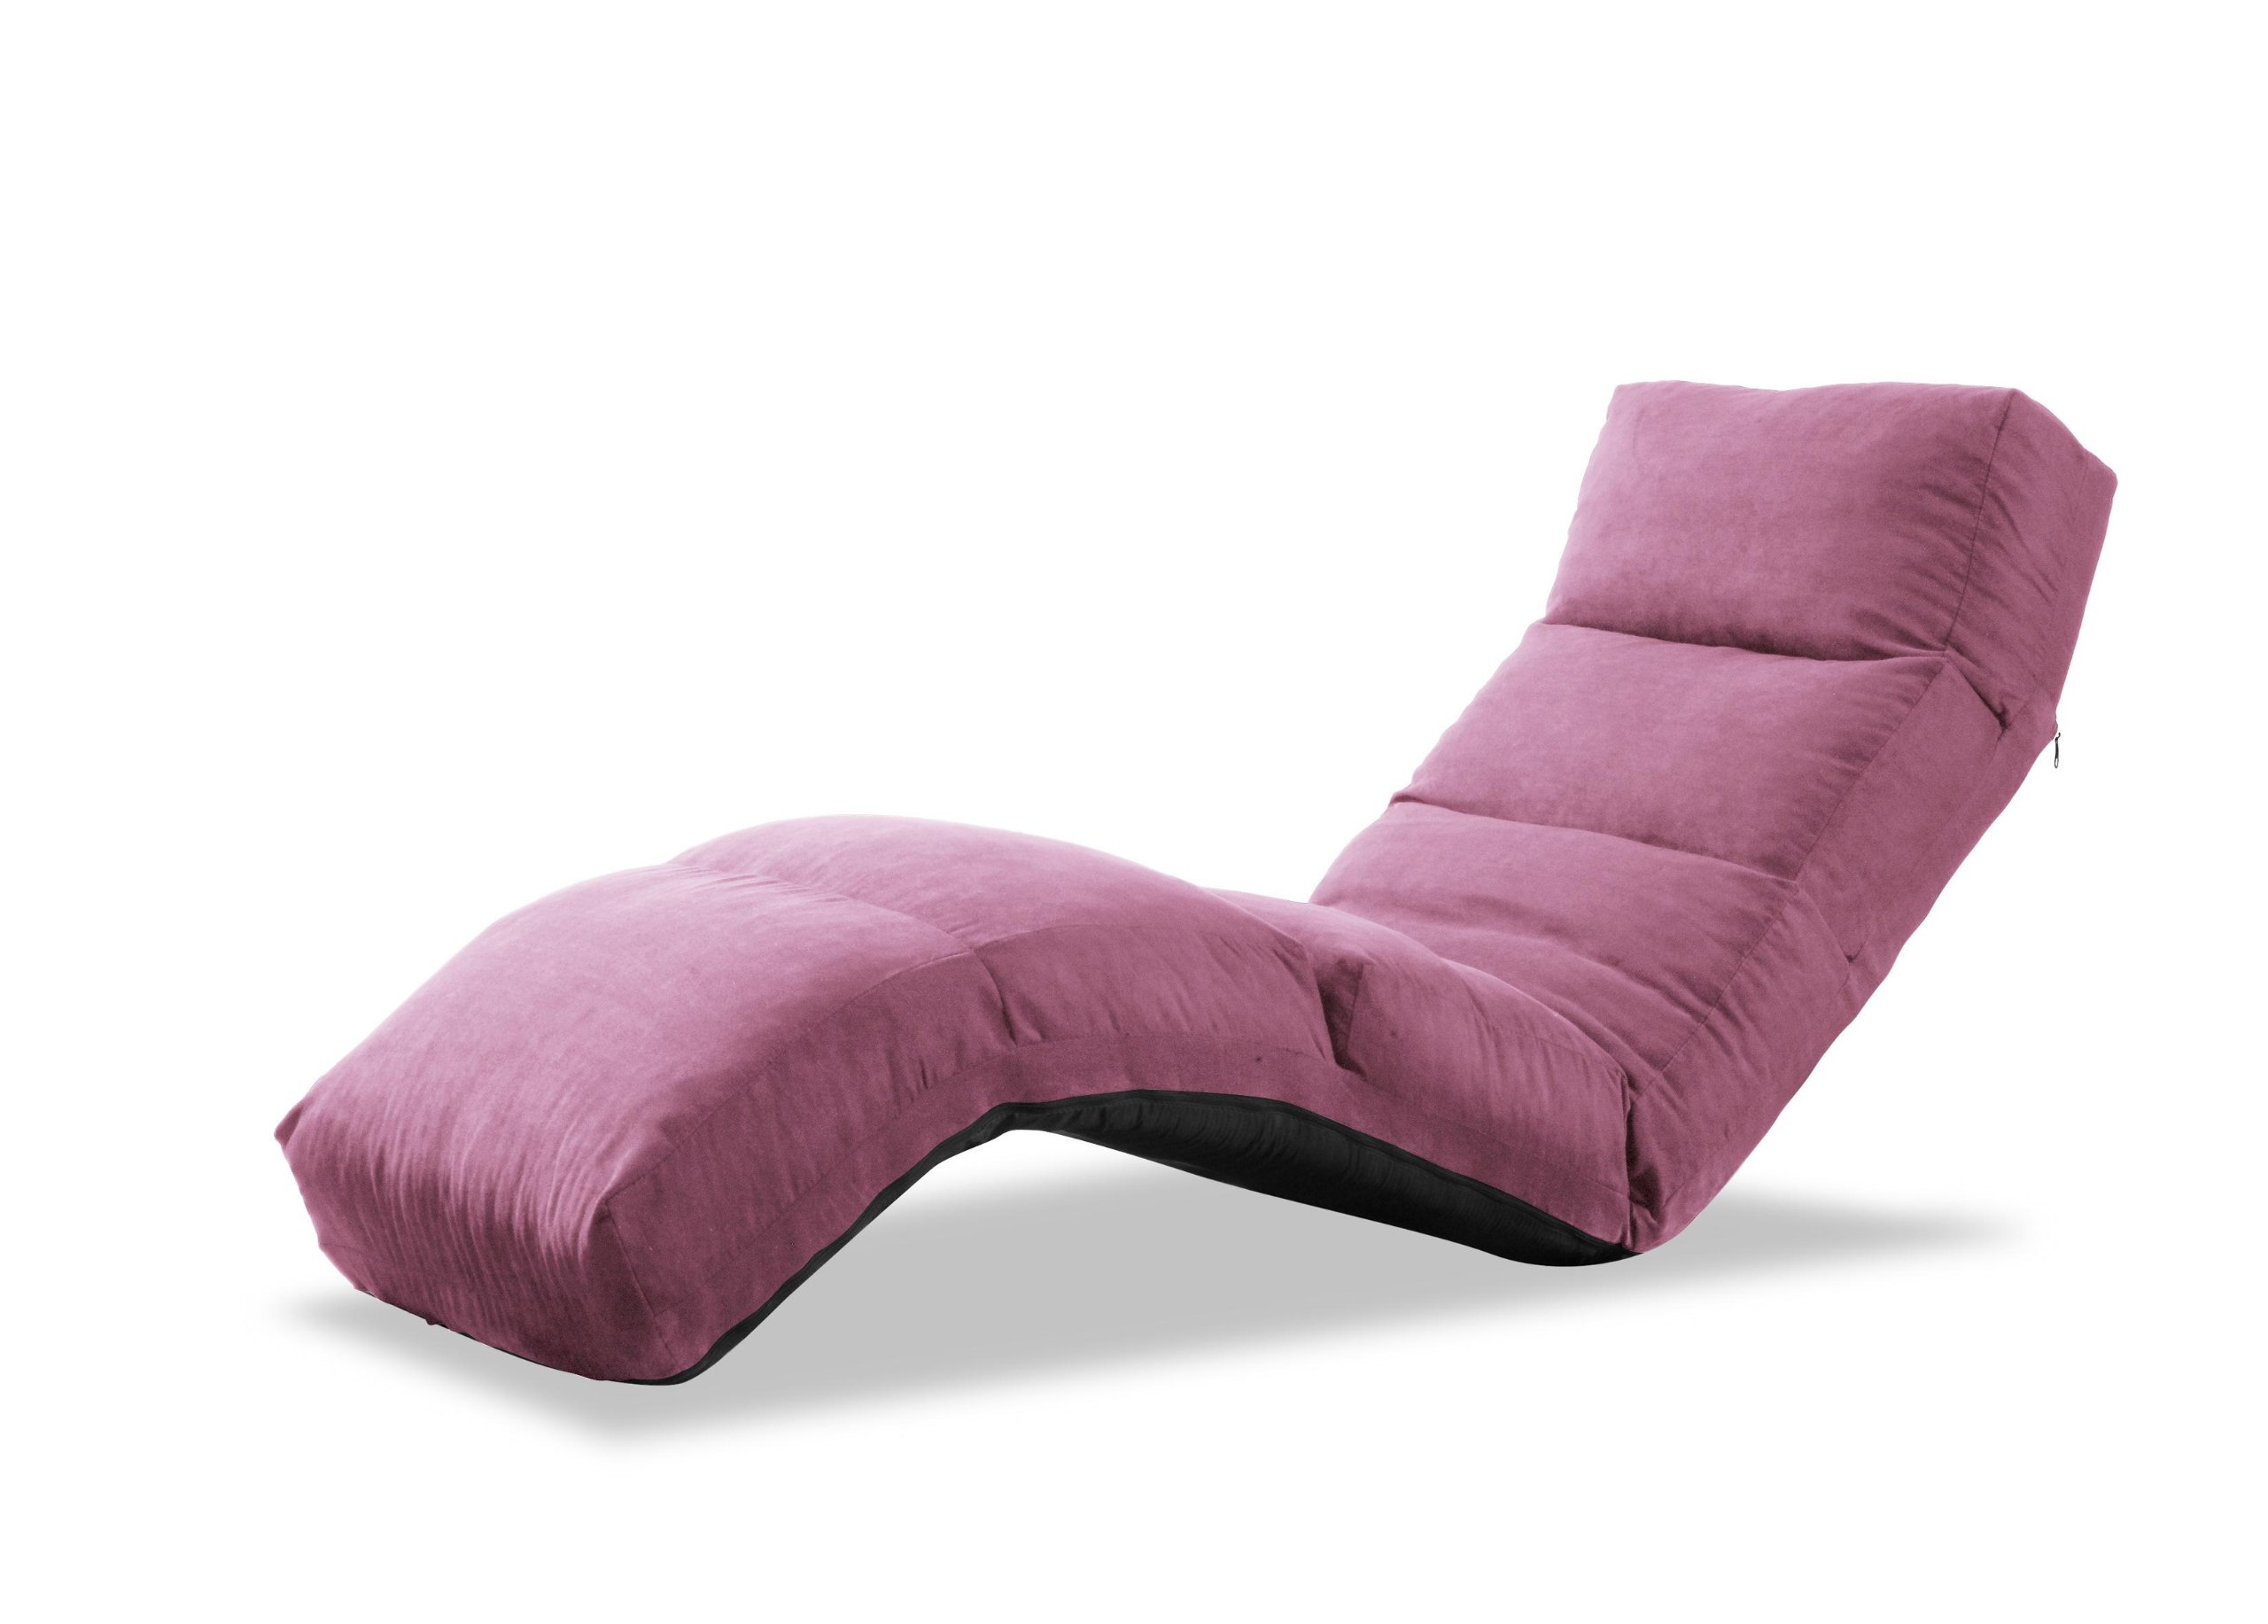 LifeStyle Solutions Jet Curved Chair Chaise Lounge Pink FurnitureNdecor